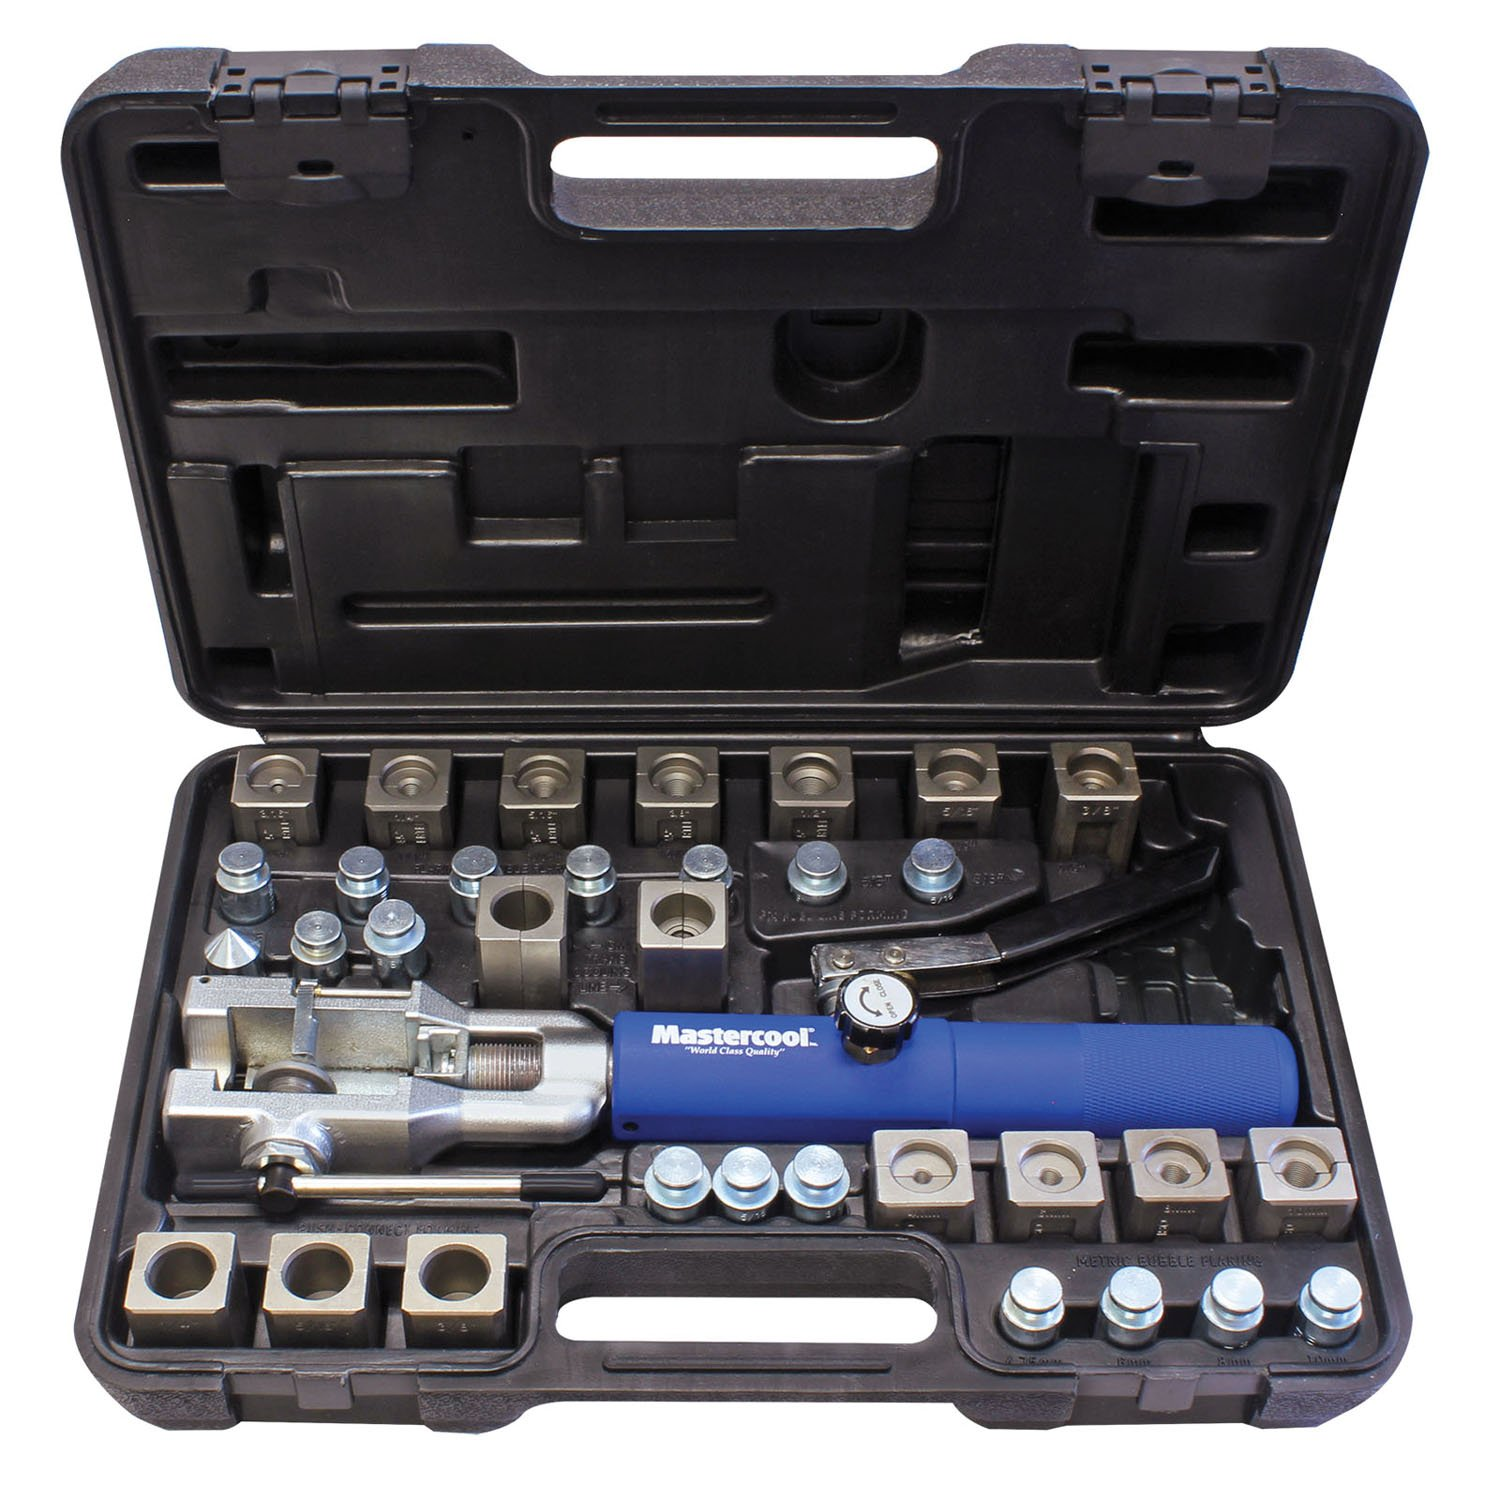 3//8/&1//2 Transmission Cooling Line Die//Adapter Sets Plus Tube Cutter MASTERCOOL 72485-PRC Silver//Blue Universal Hydraulic Flaring Tool